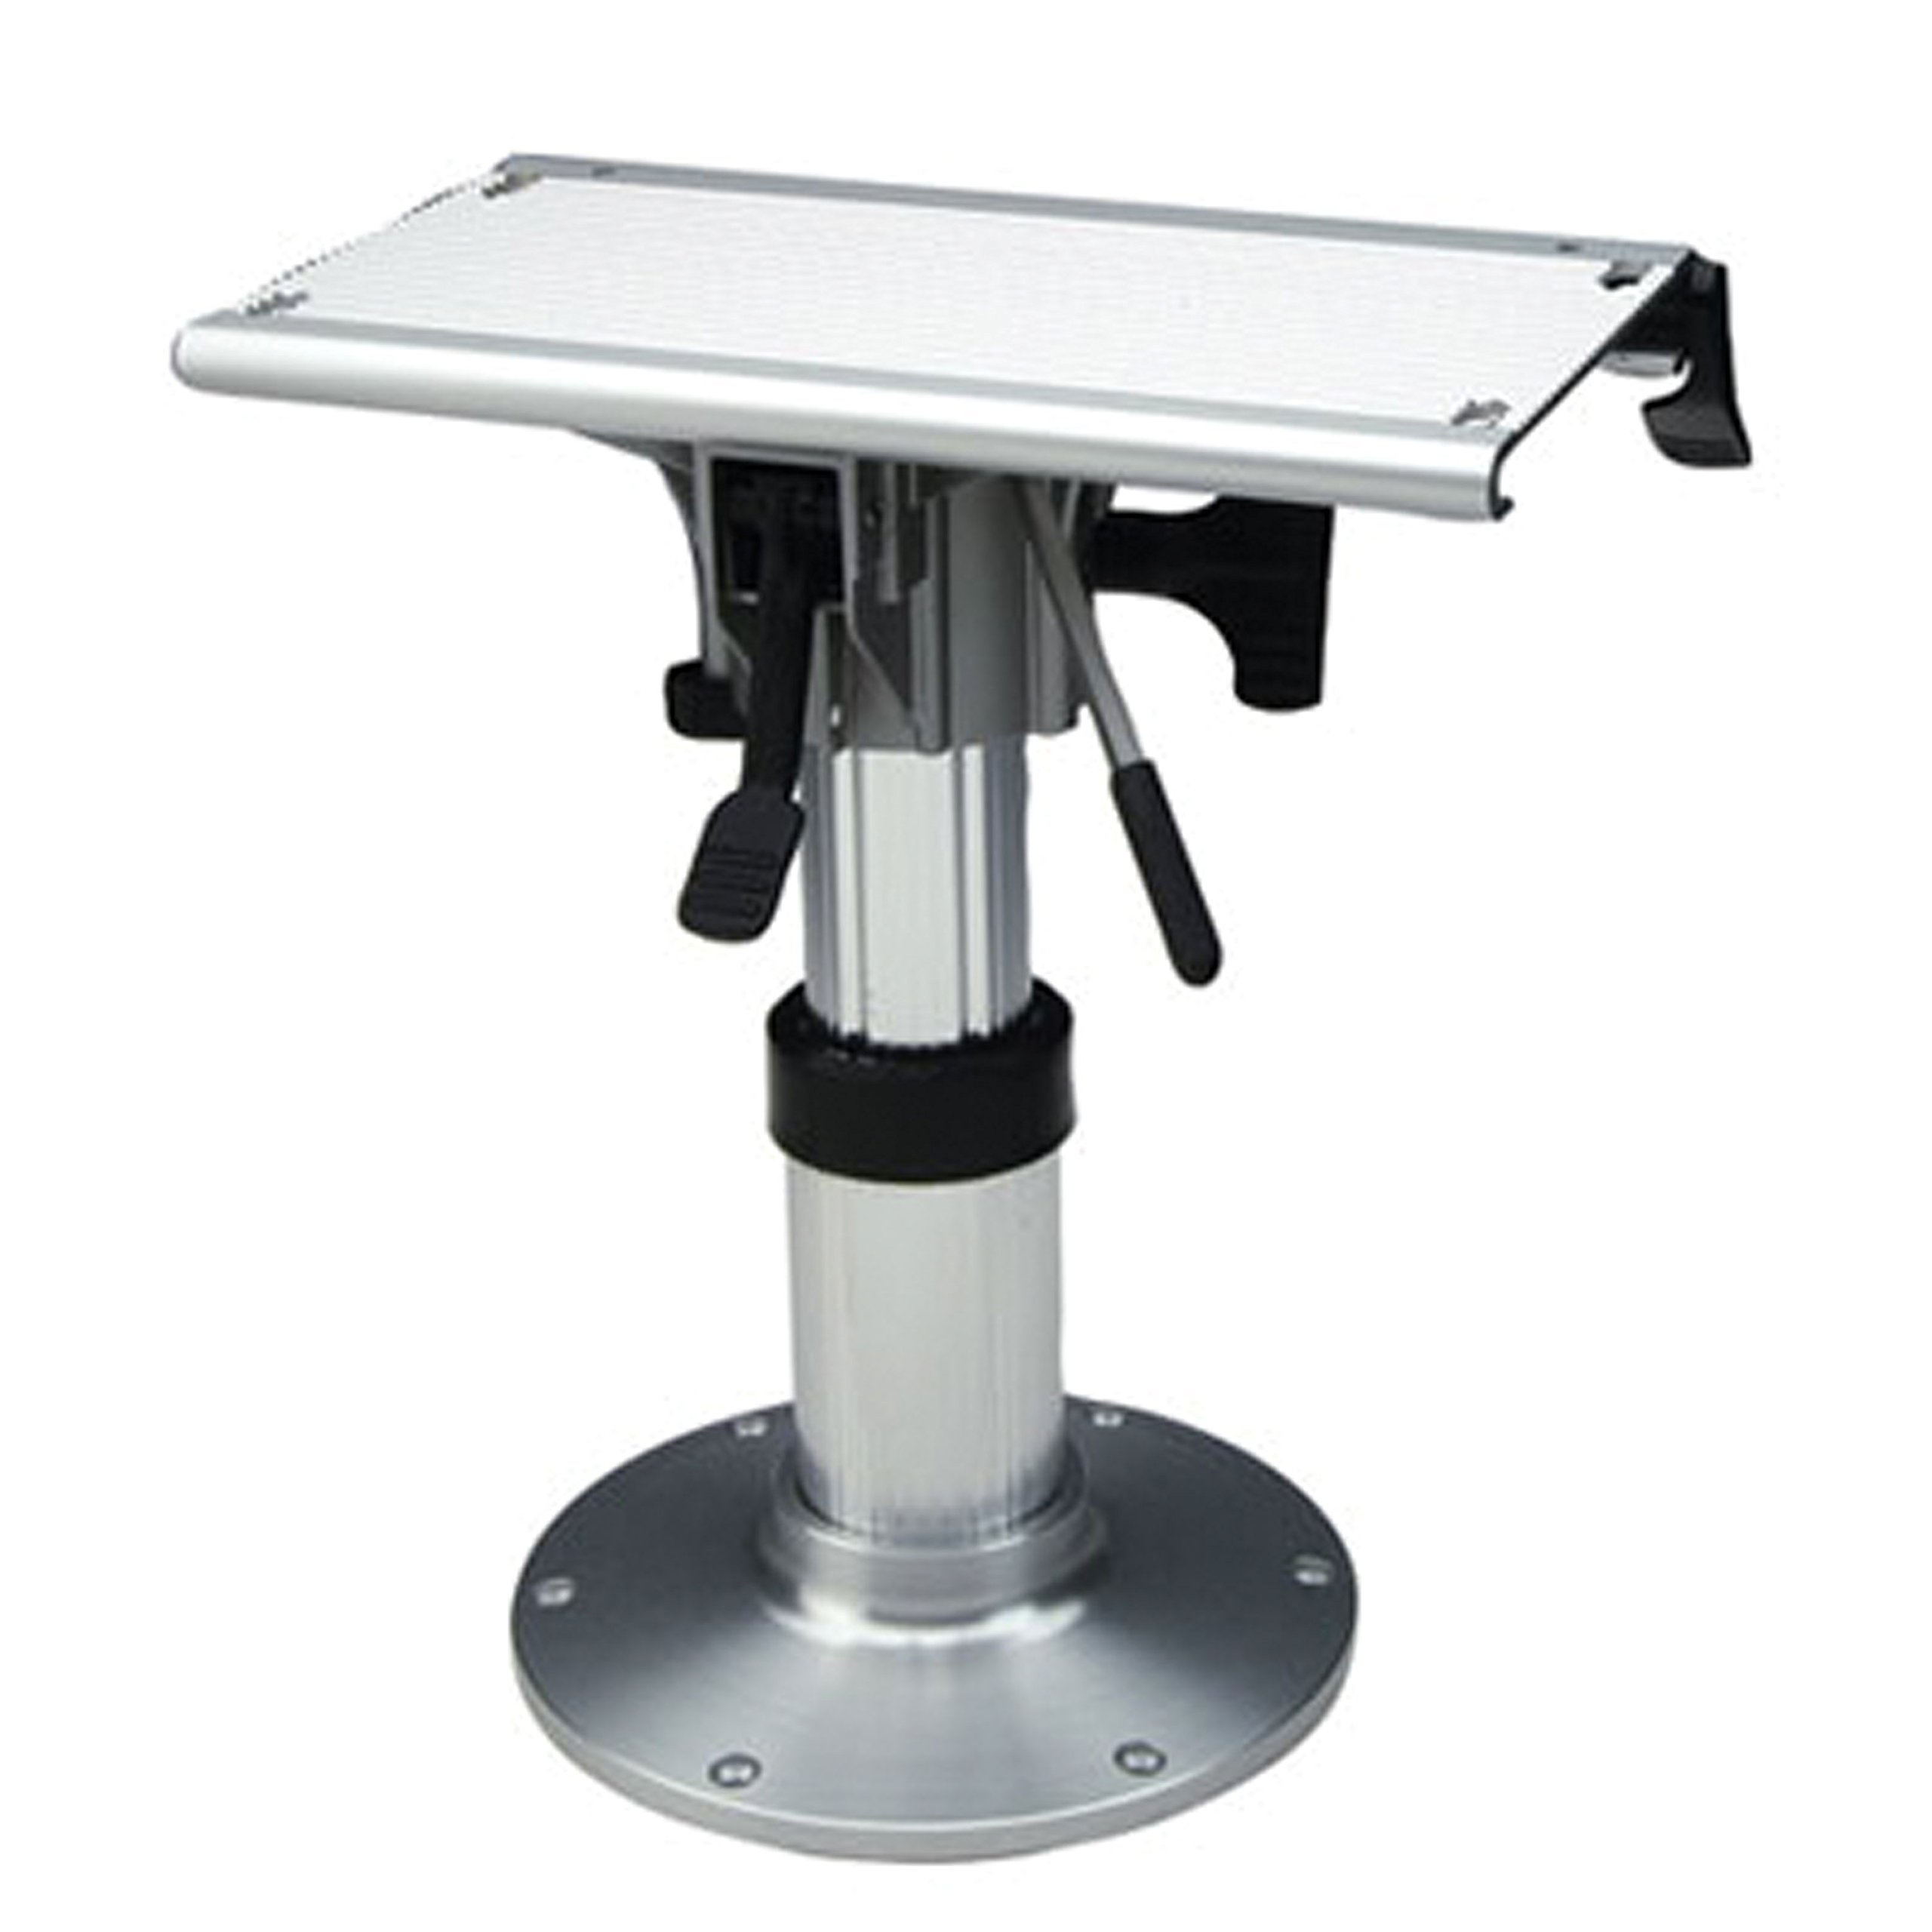 Garelick/Eez-In 75636:01 Garelick Adjustable Pedestal System - 12'' to 15''